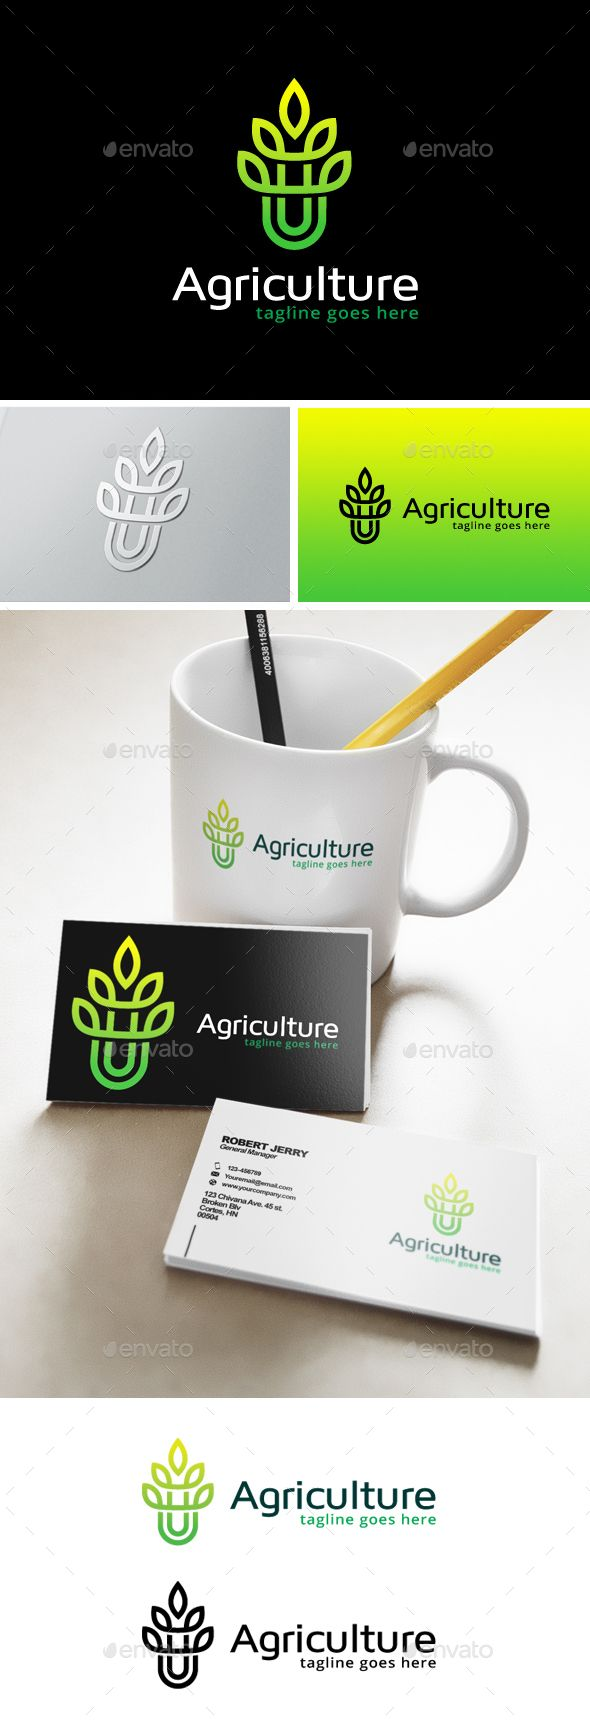 Agriculture - Logo Design Template Vector #logotype Download it here: http://graphicriver.net/item/agriculture-logo/14131973?s_rank=244?ref=nesto